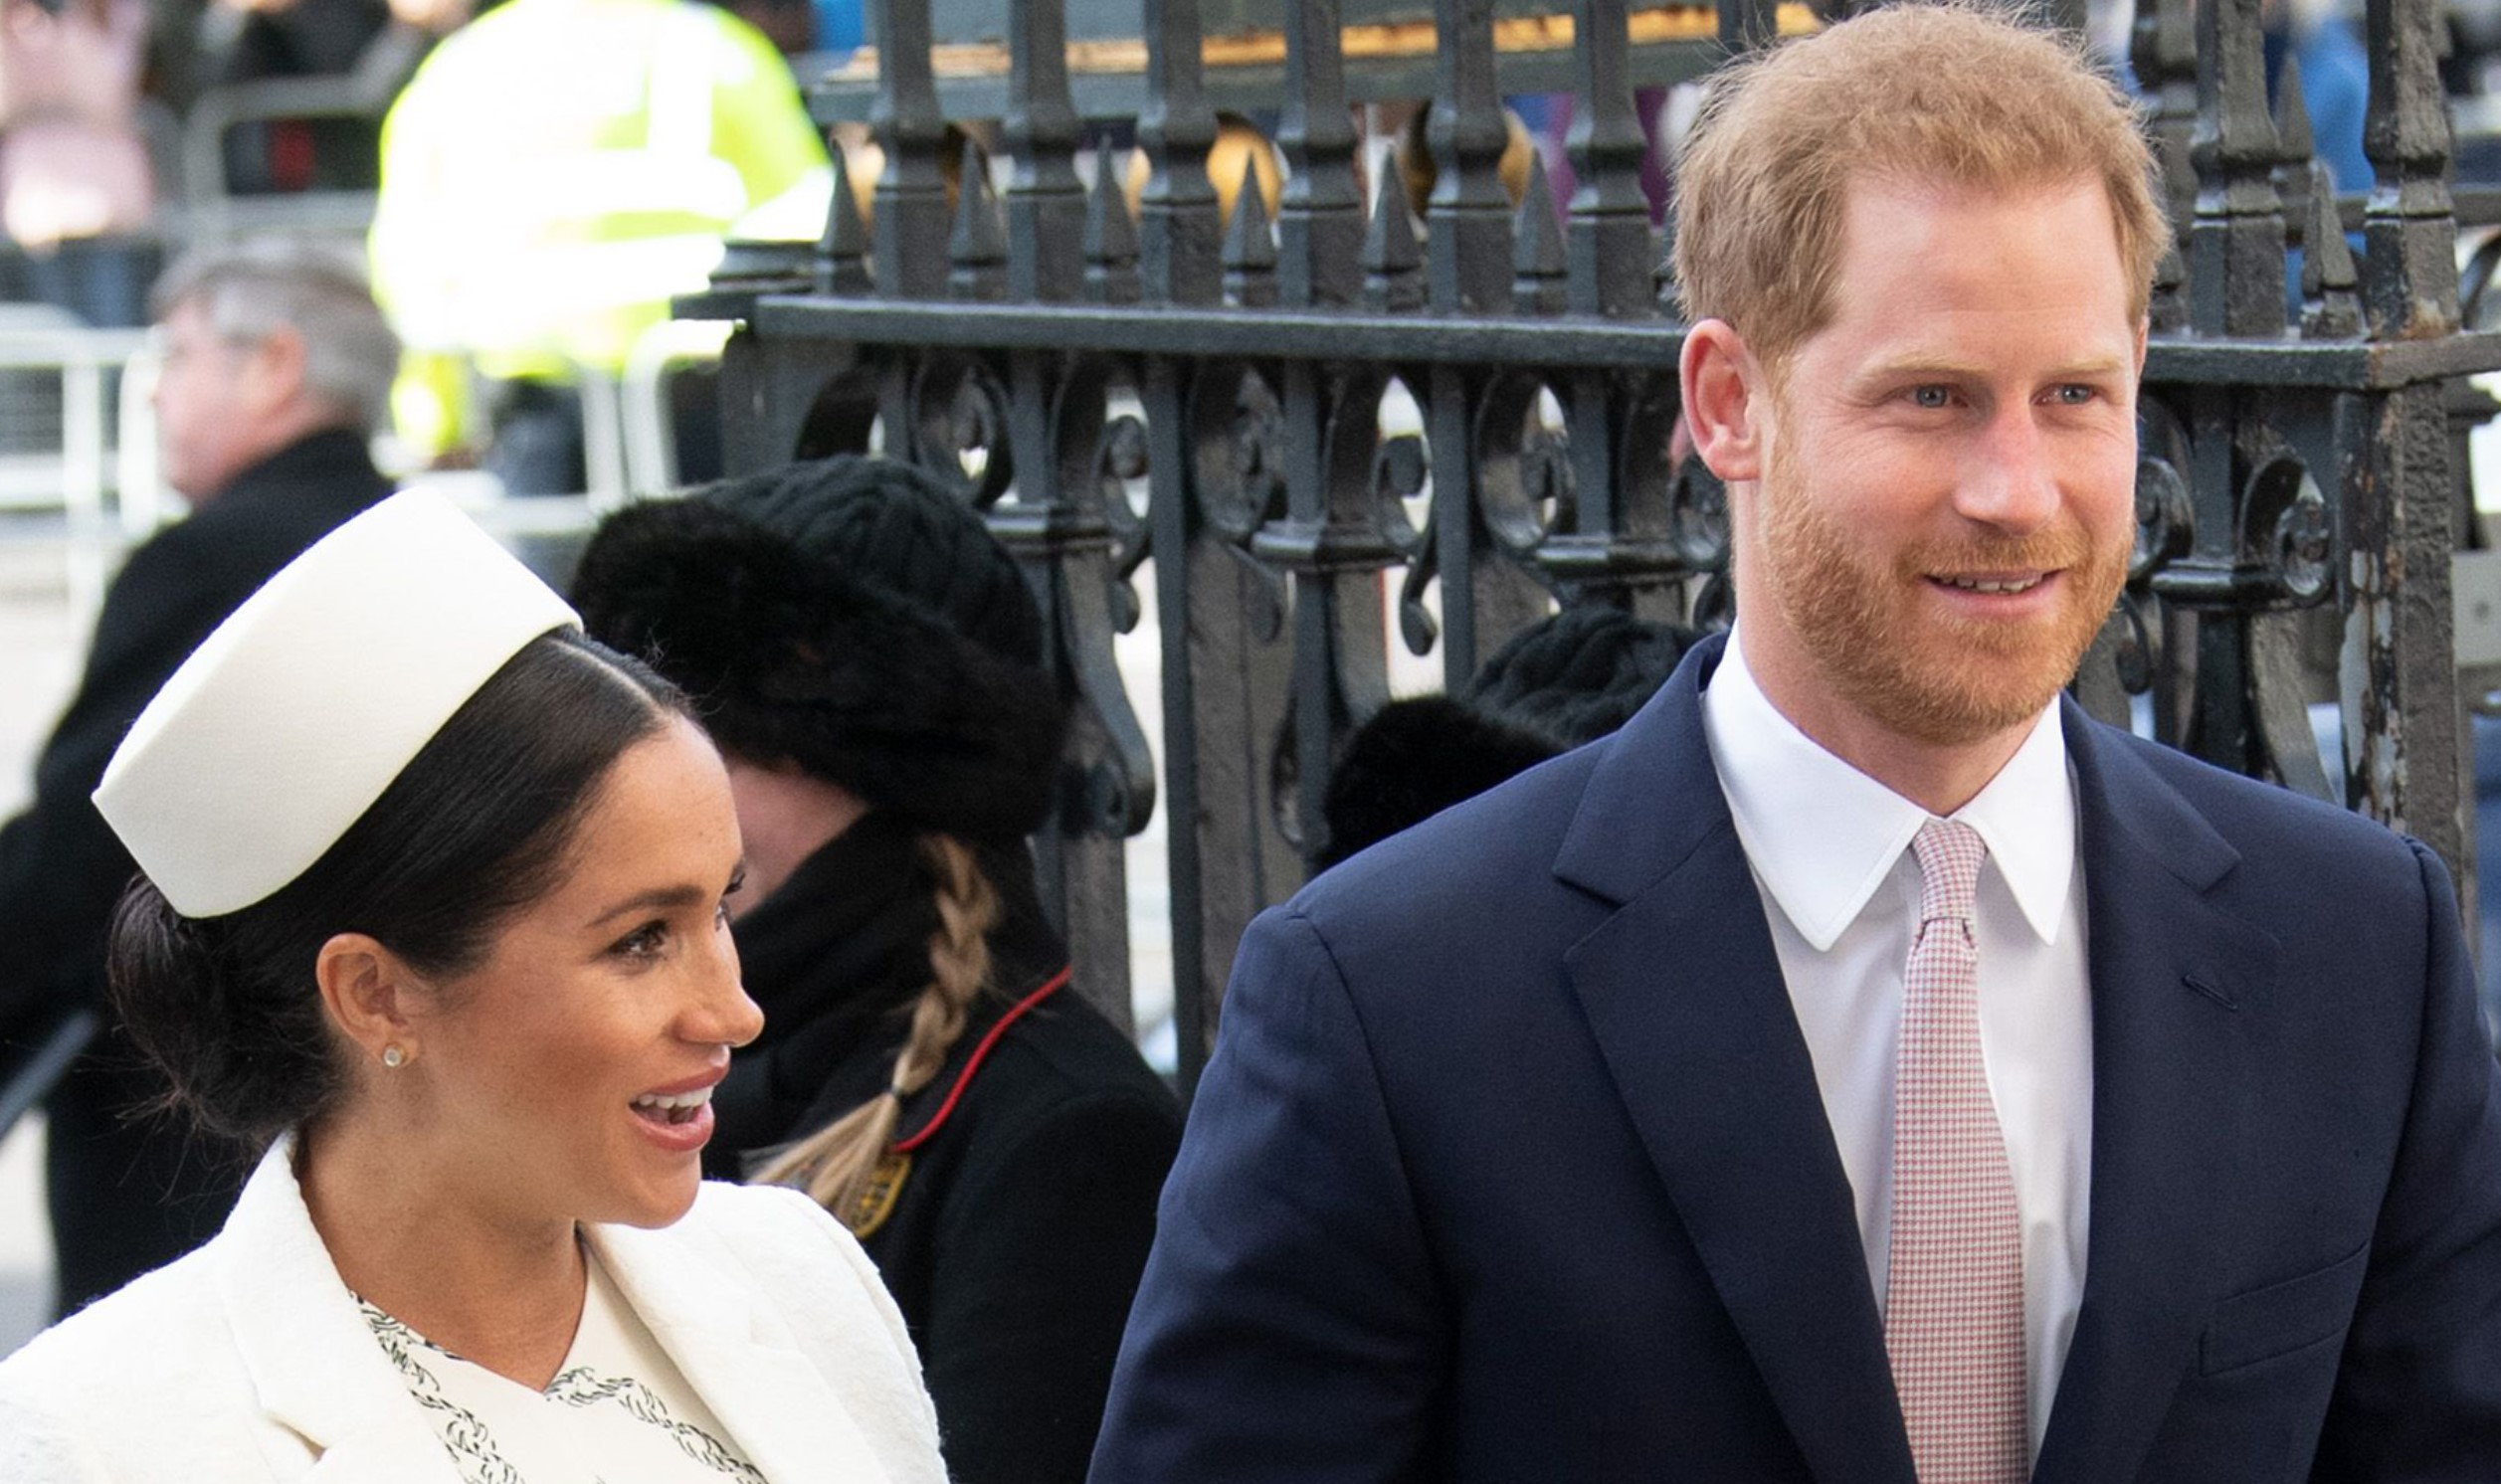 Harry says he and Meghan will 'only have two children' in a bid to save the planet